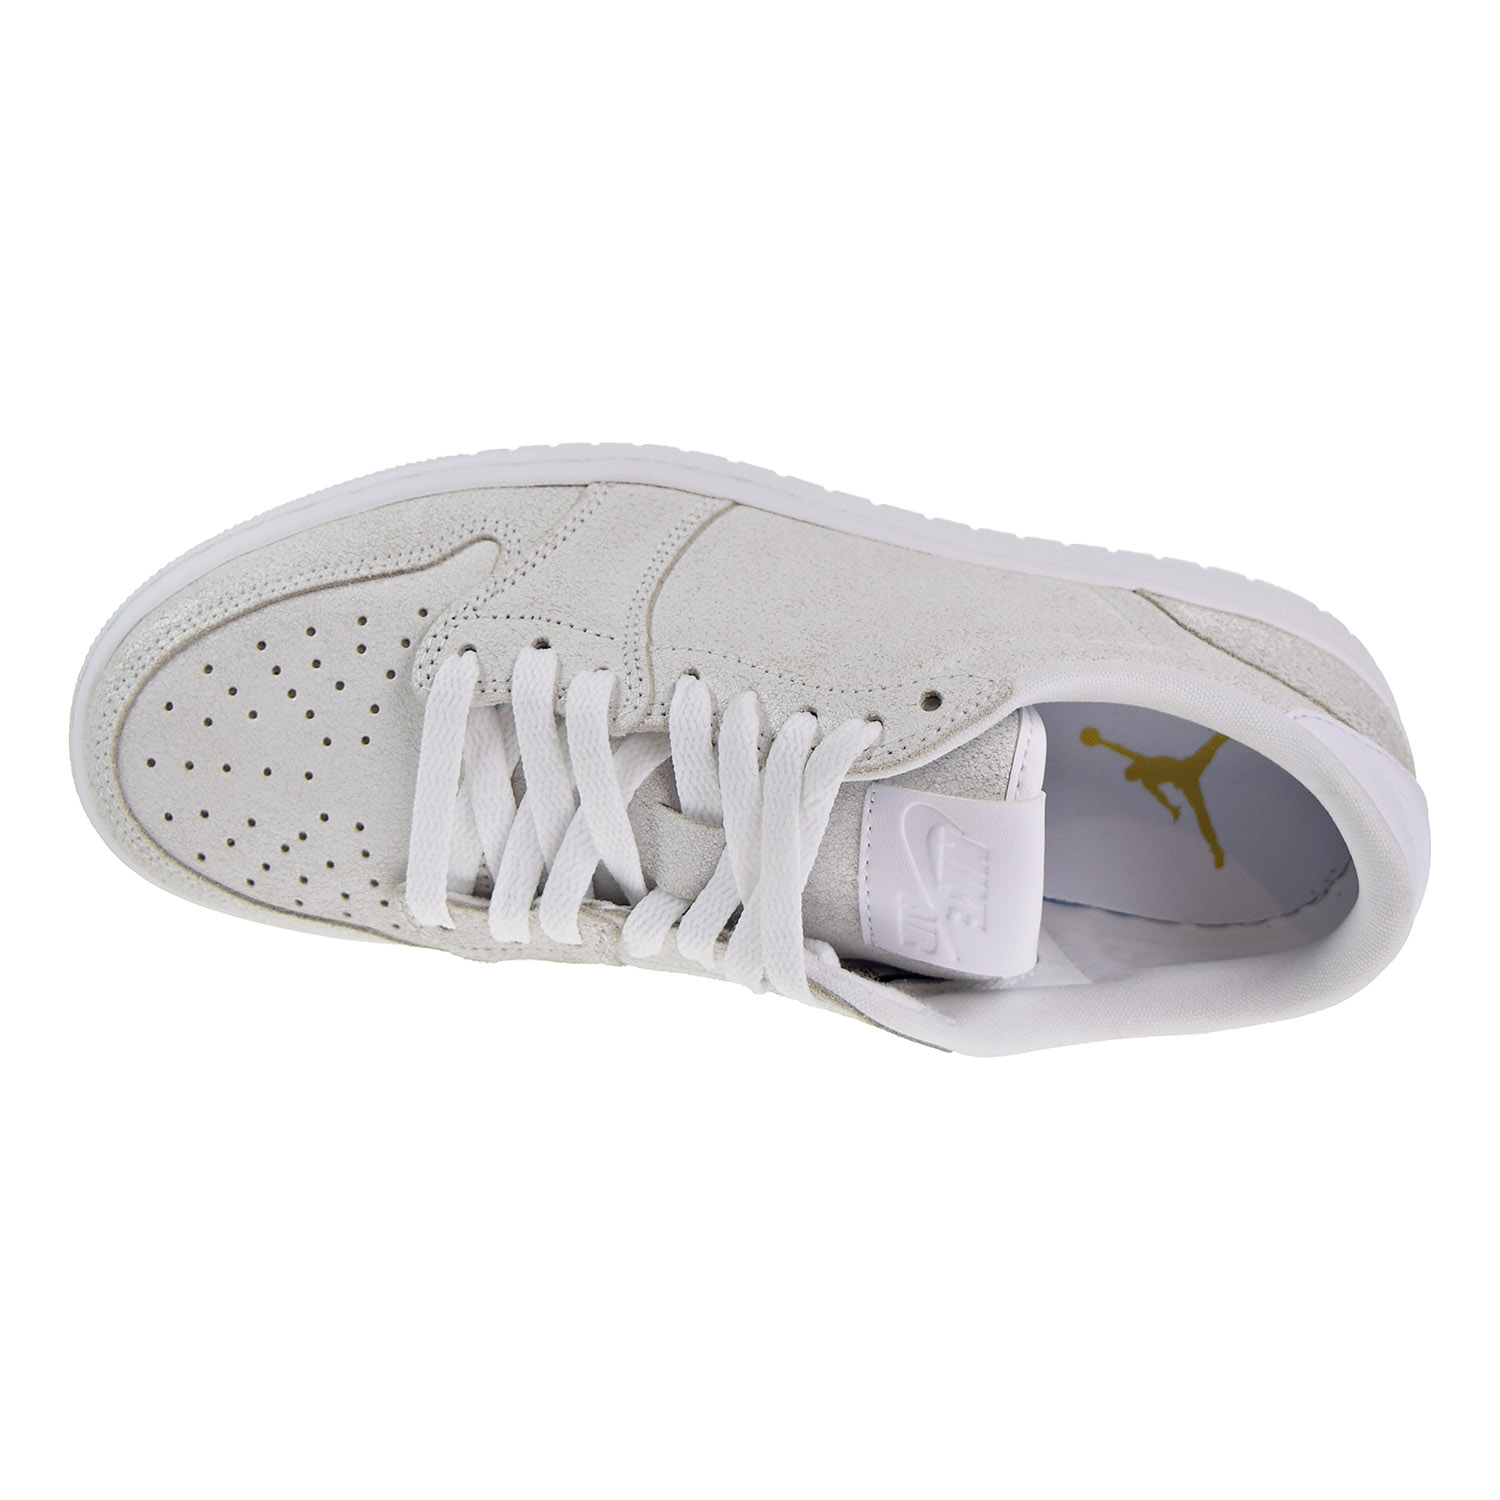 finest selection 57261 2cffd Air Jordan 1 Retro Low NS Women s Shoes White Metallic Gold ah7232-100